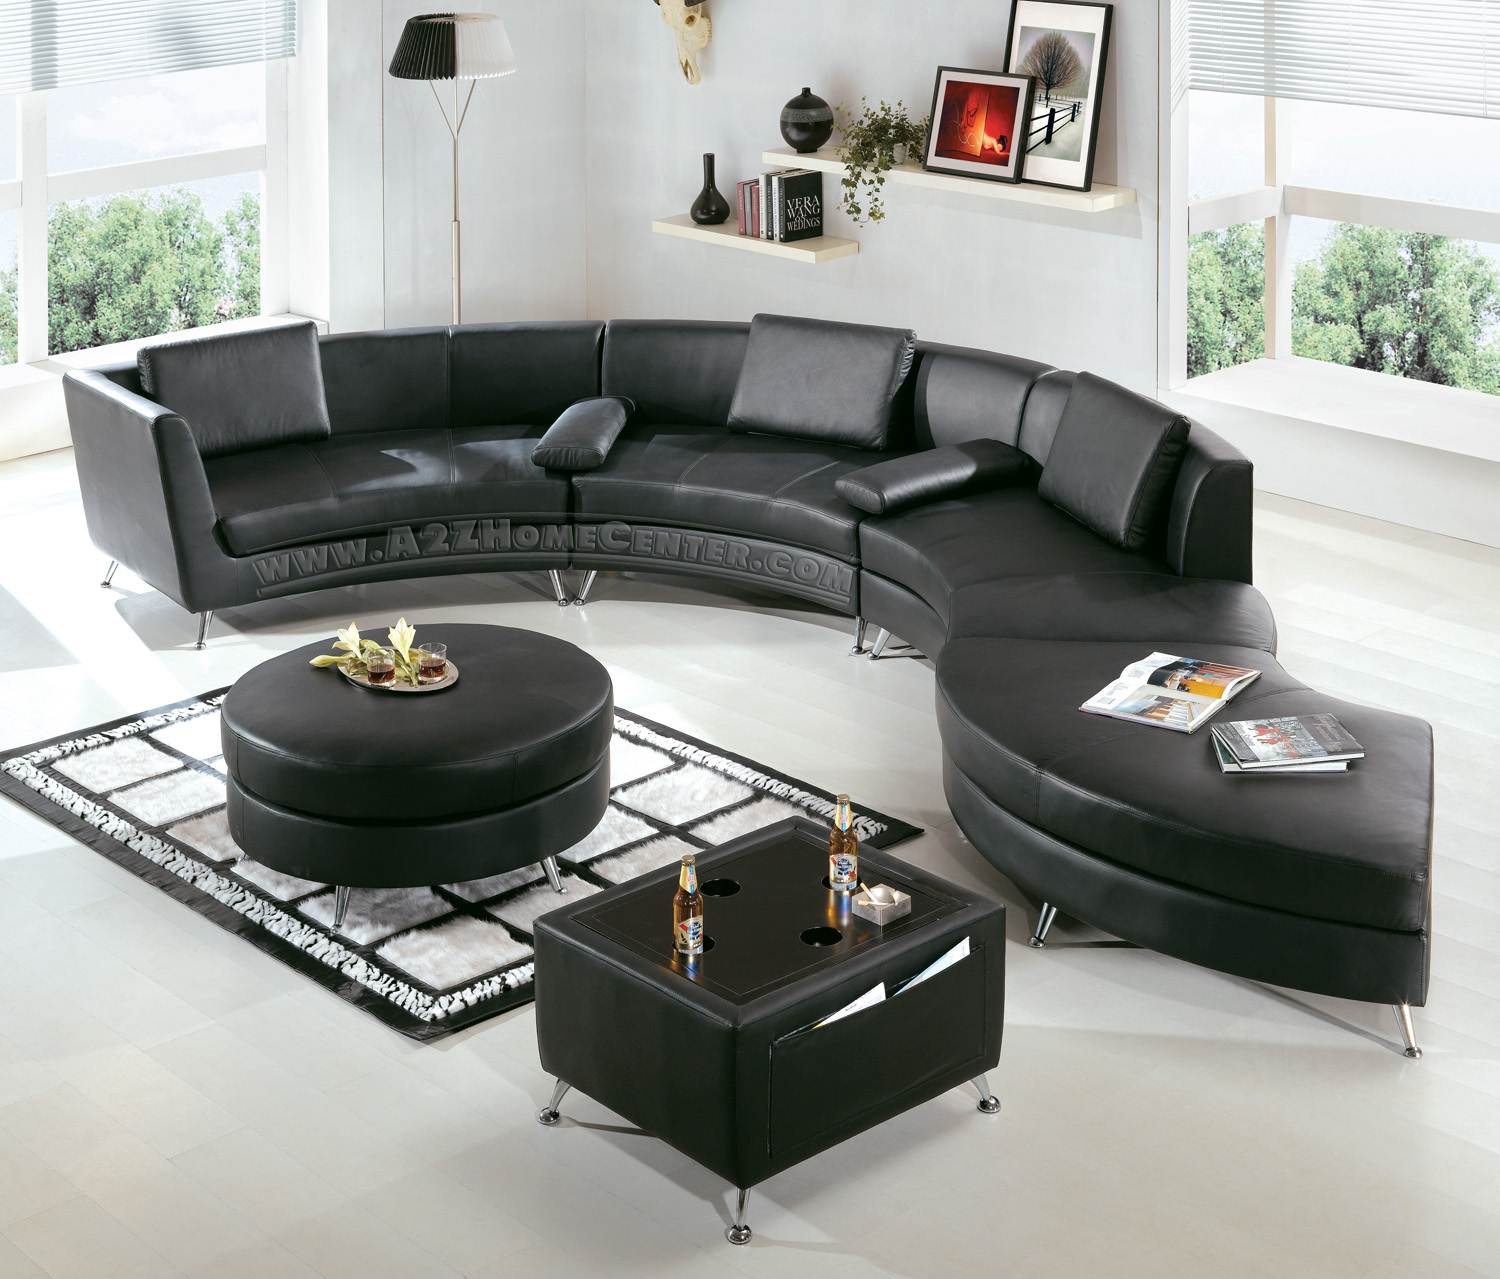 Like leathers leather sectional sofa - Modern living room furniture designs ...